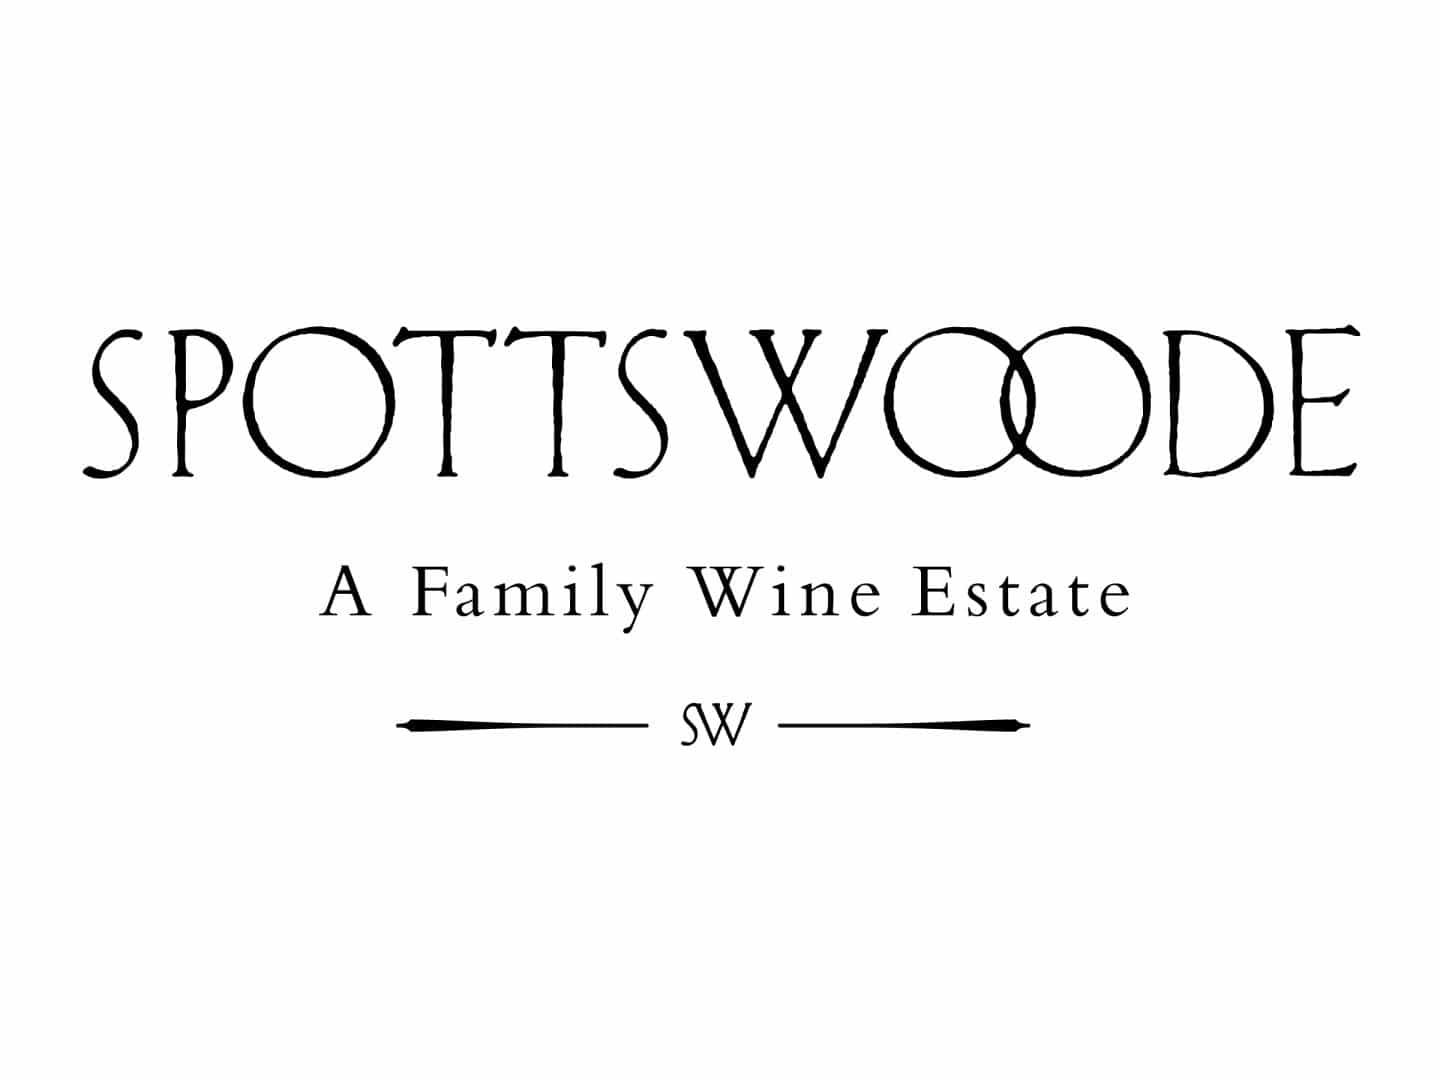 Spottswoode Winery